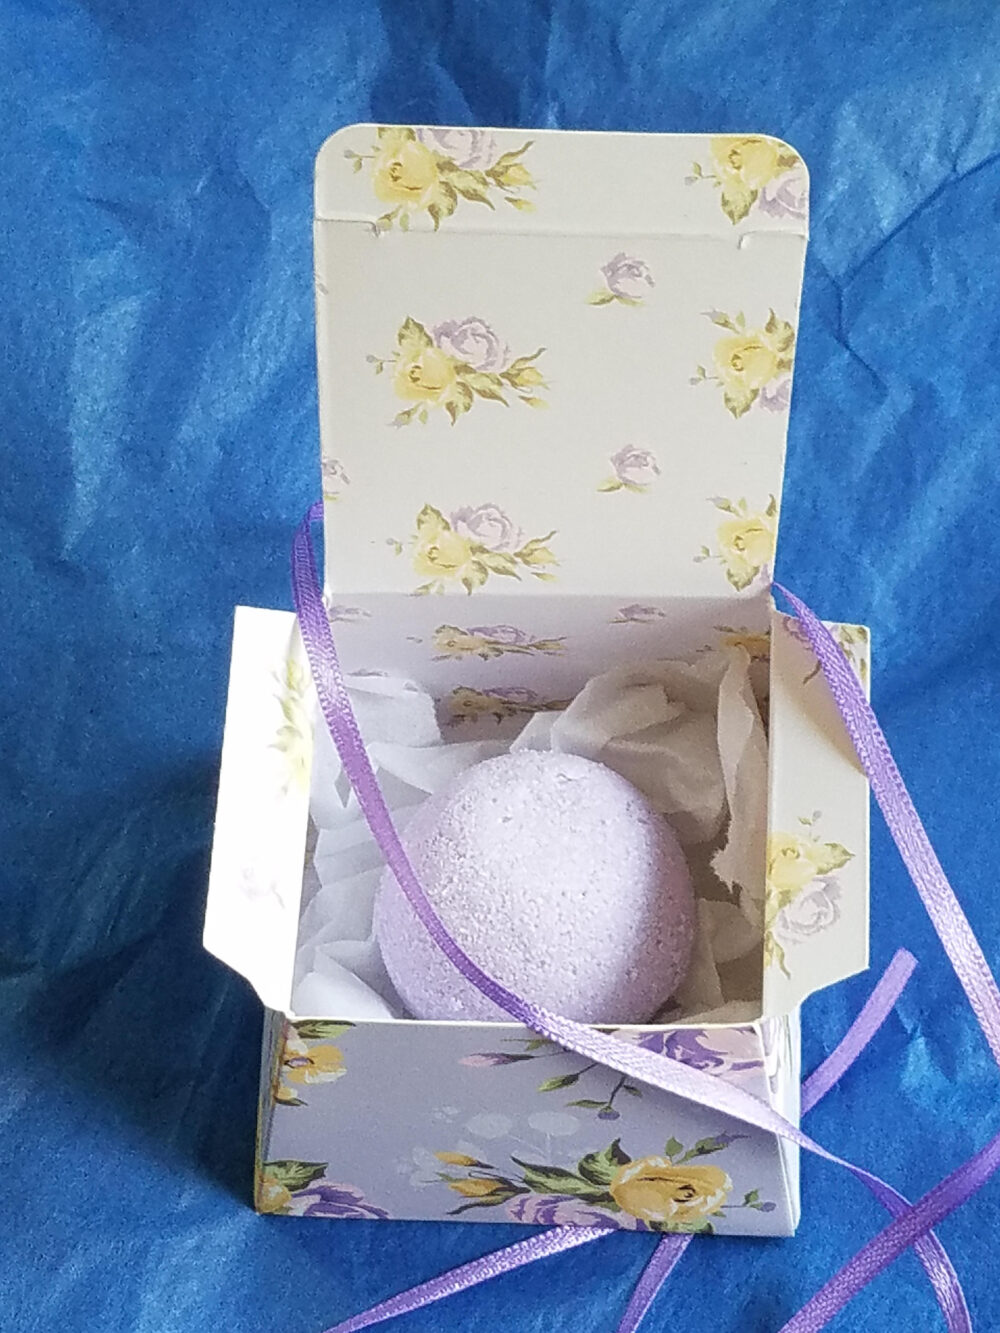 Wedding Favors, 20 Bridal Shower Favors , Bride & Groom, Baby Shower, Party, Wedding Bath Bombs Gift Bomb, Handcrafted